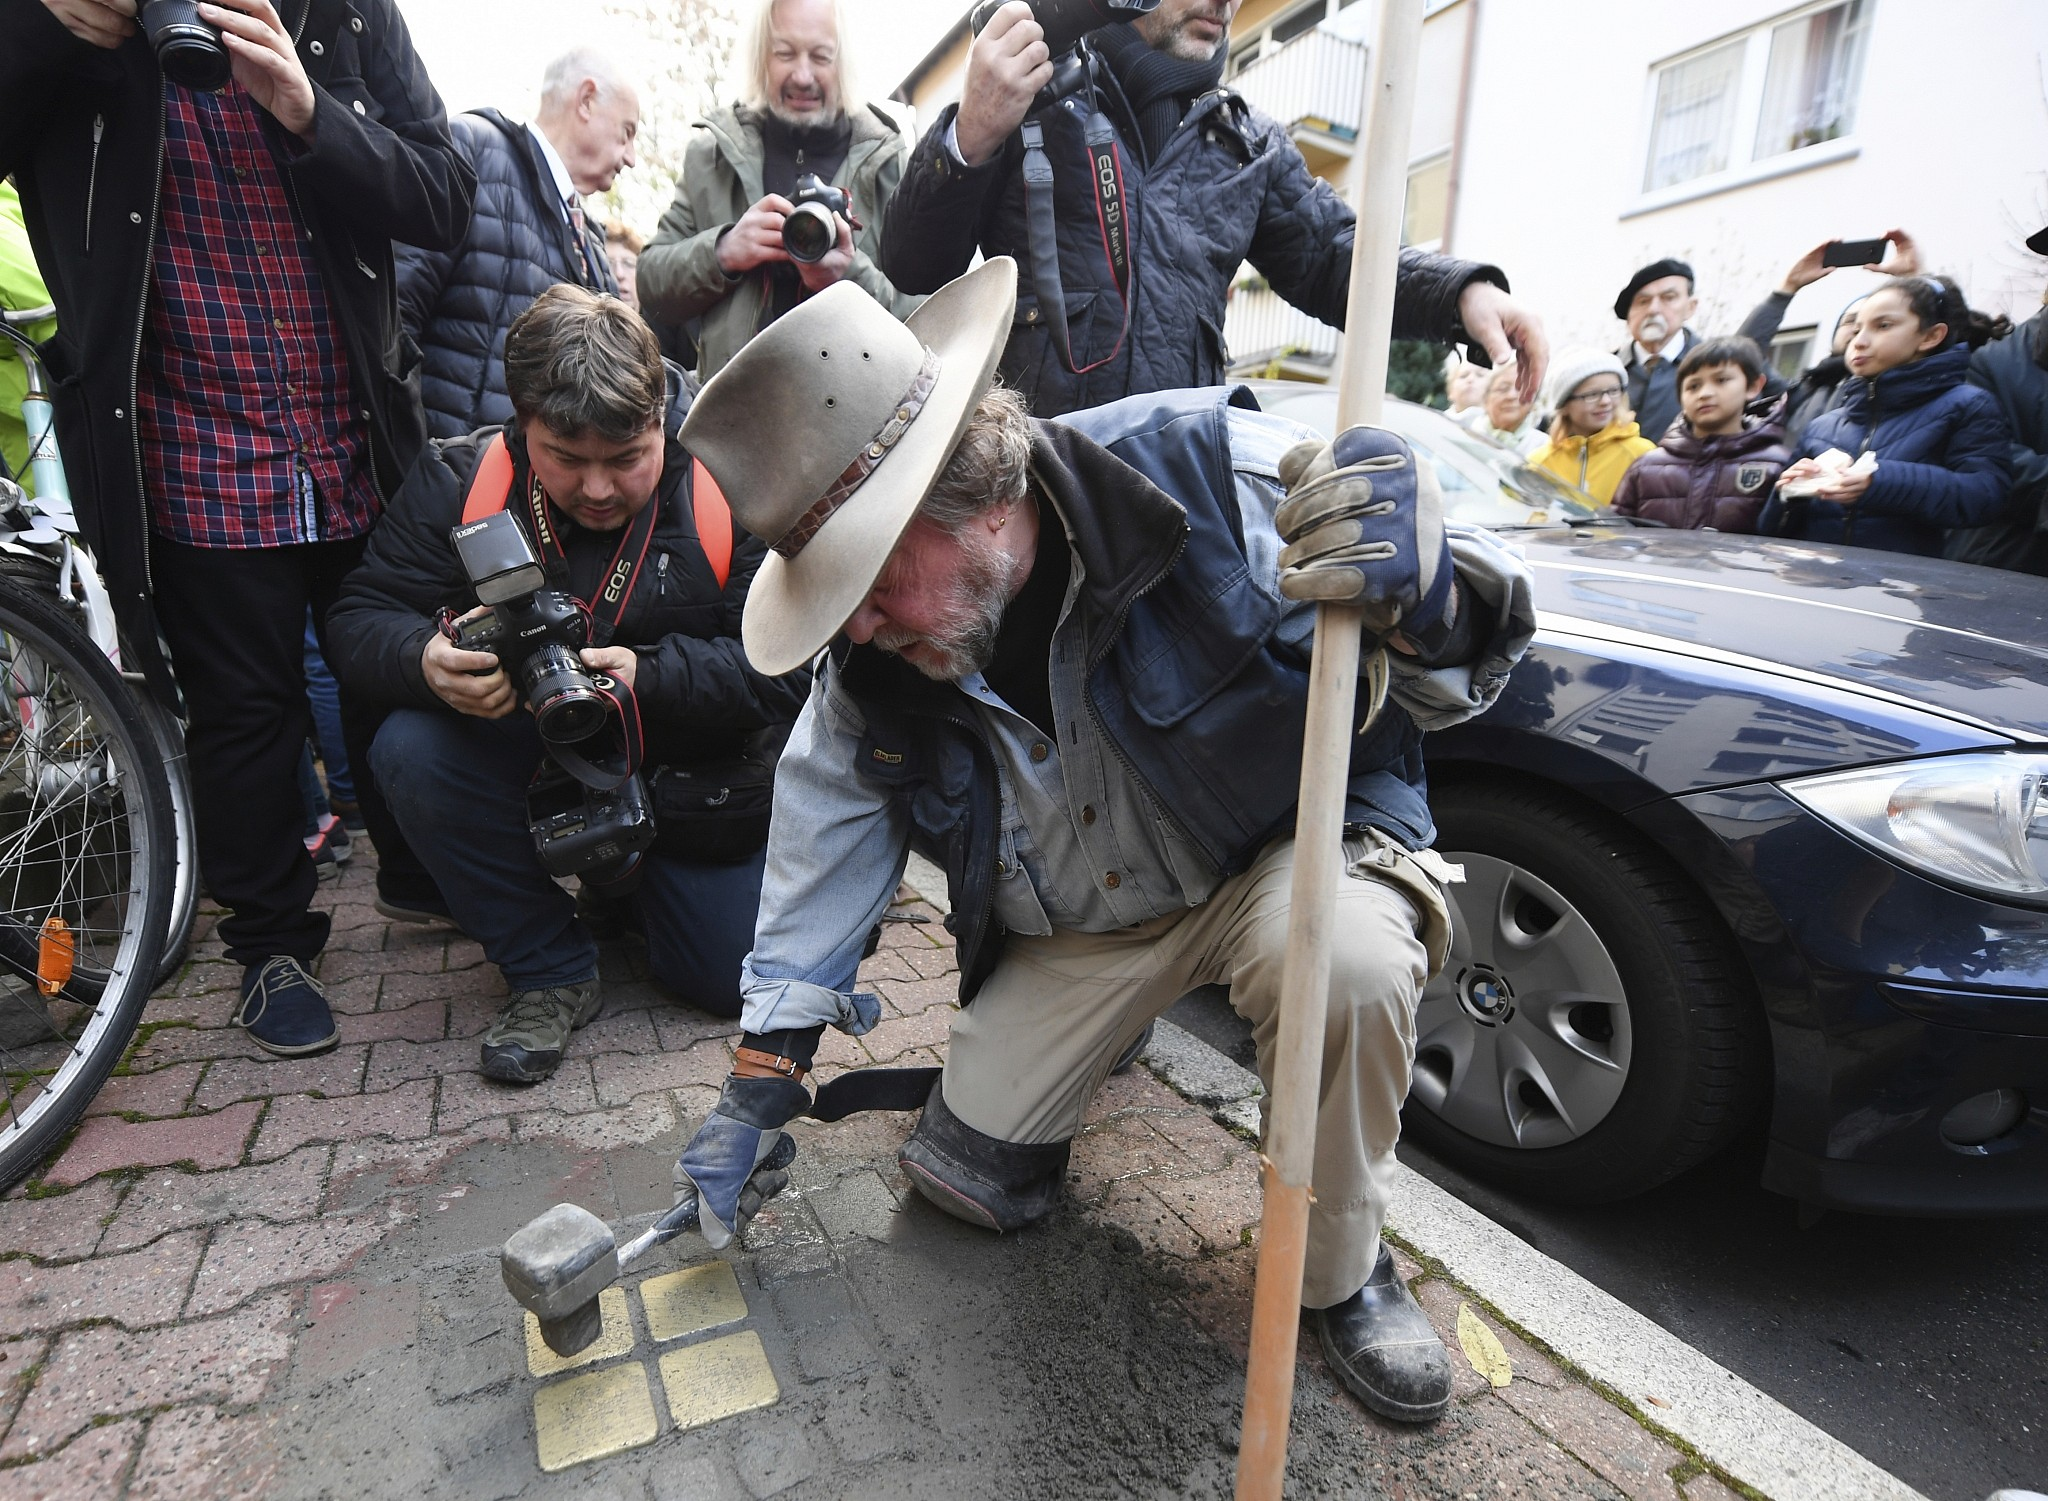 Dutch City Accused Of Plagiarizing Holocaust Memorial Cobblestones